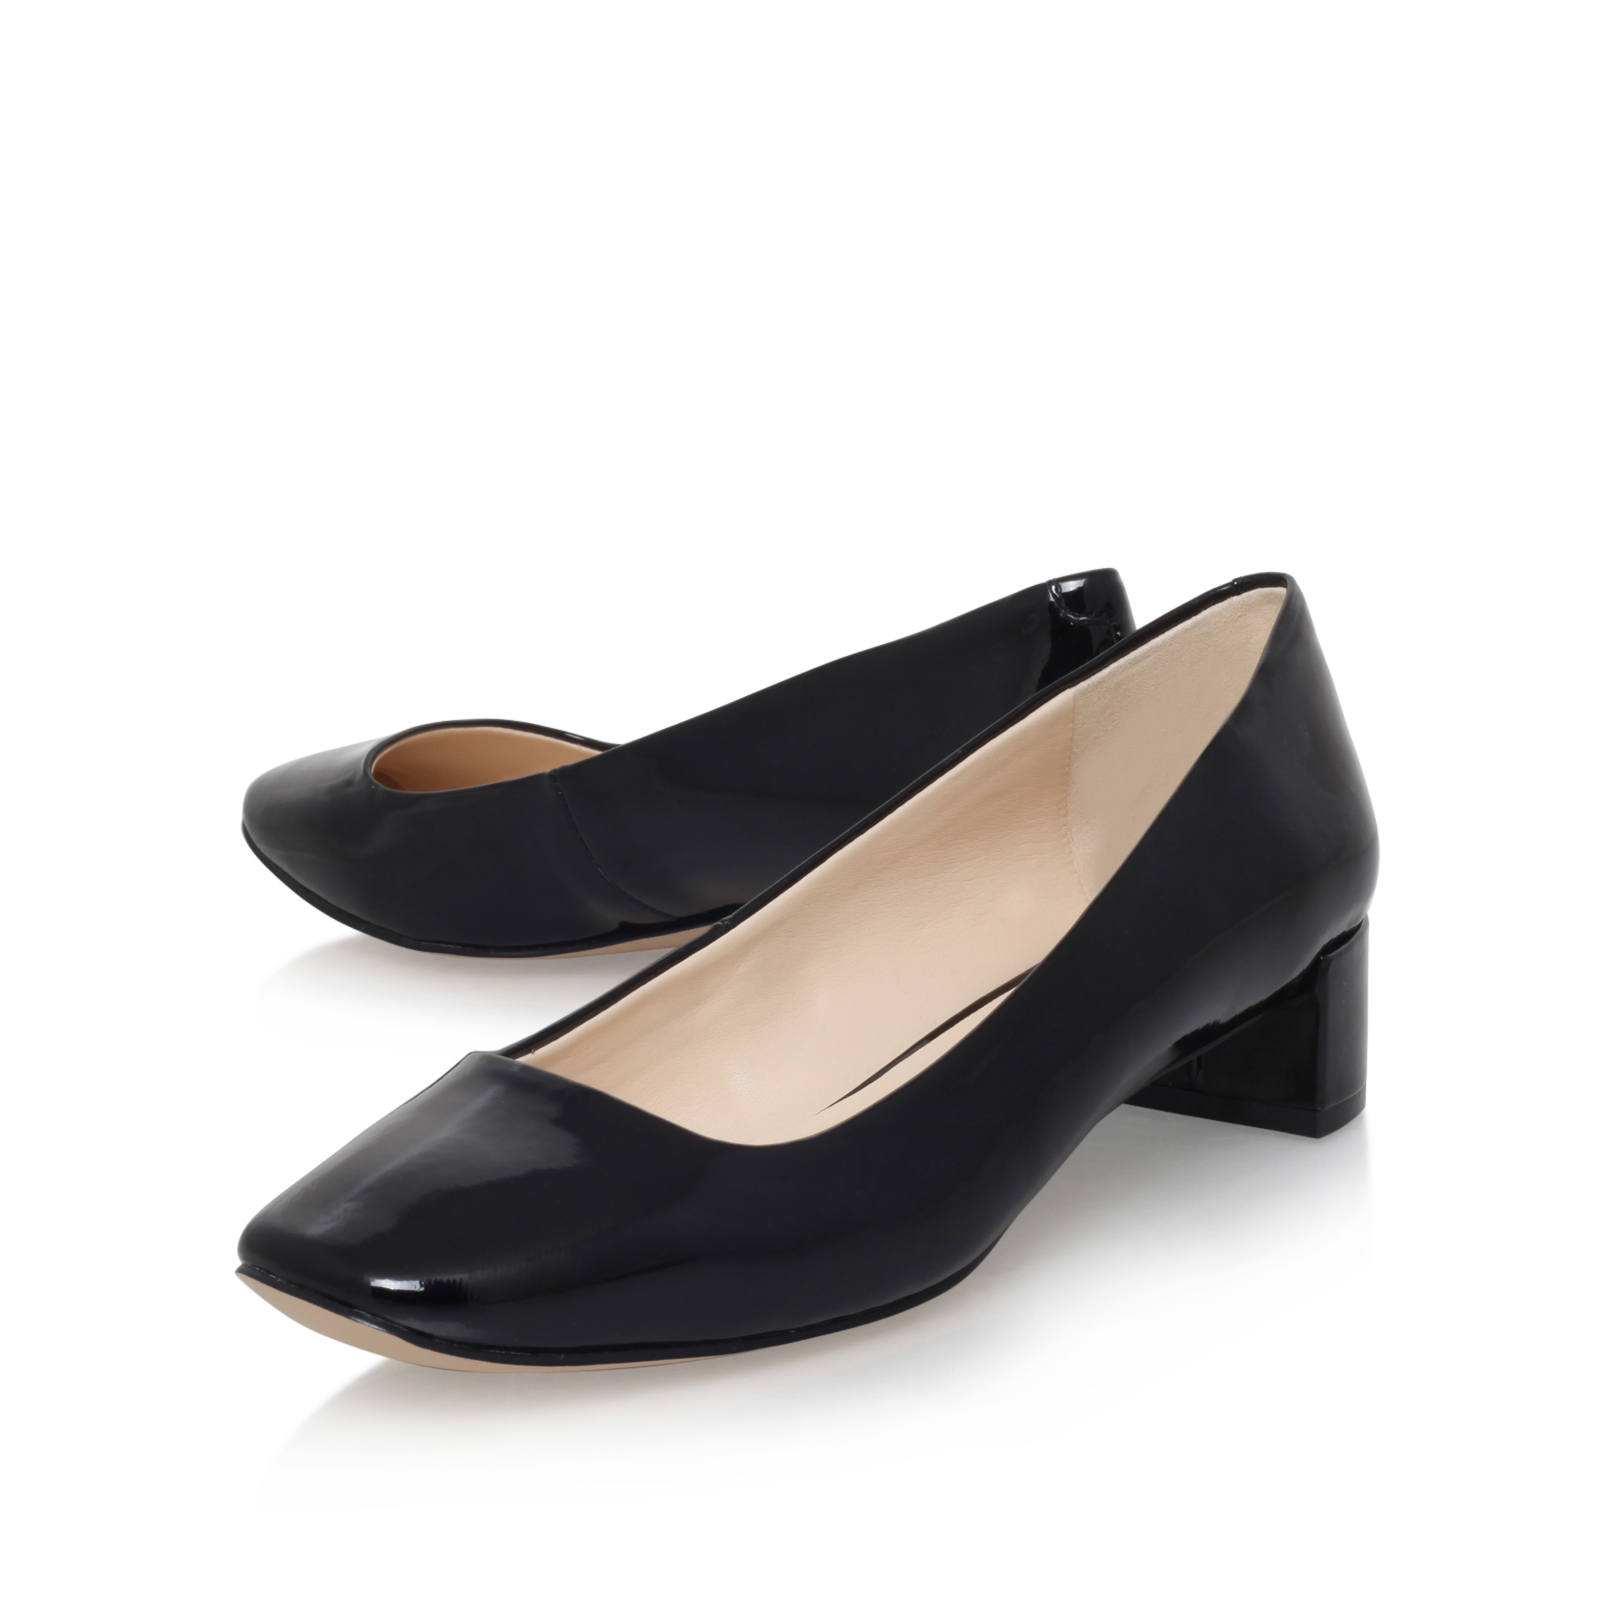 ab0fecda7e80 OLENCIA3 Nine West Olencia3 Black Patent Court by NINE WEST